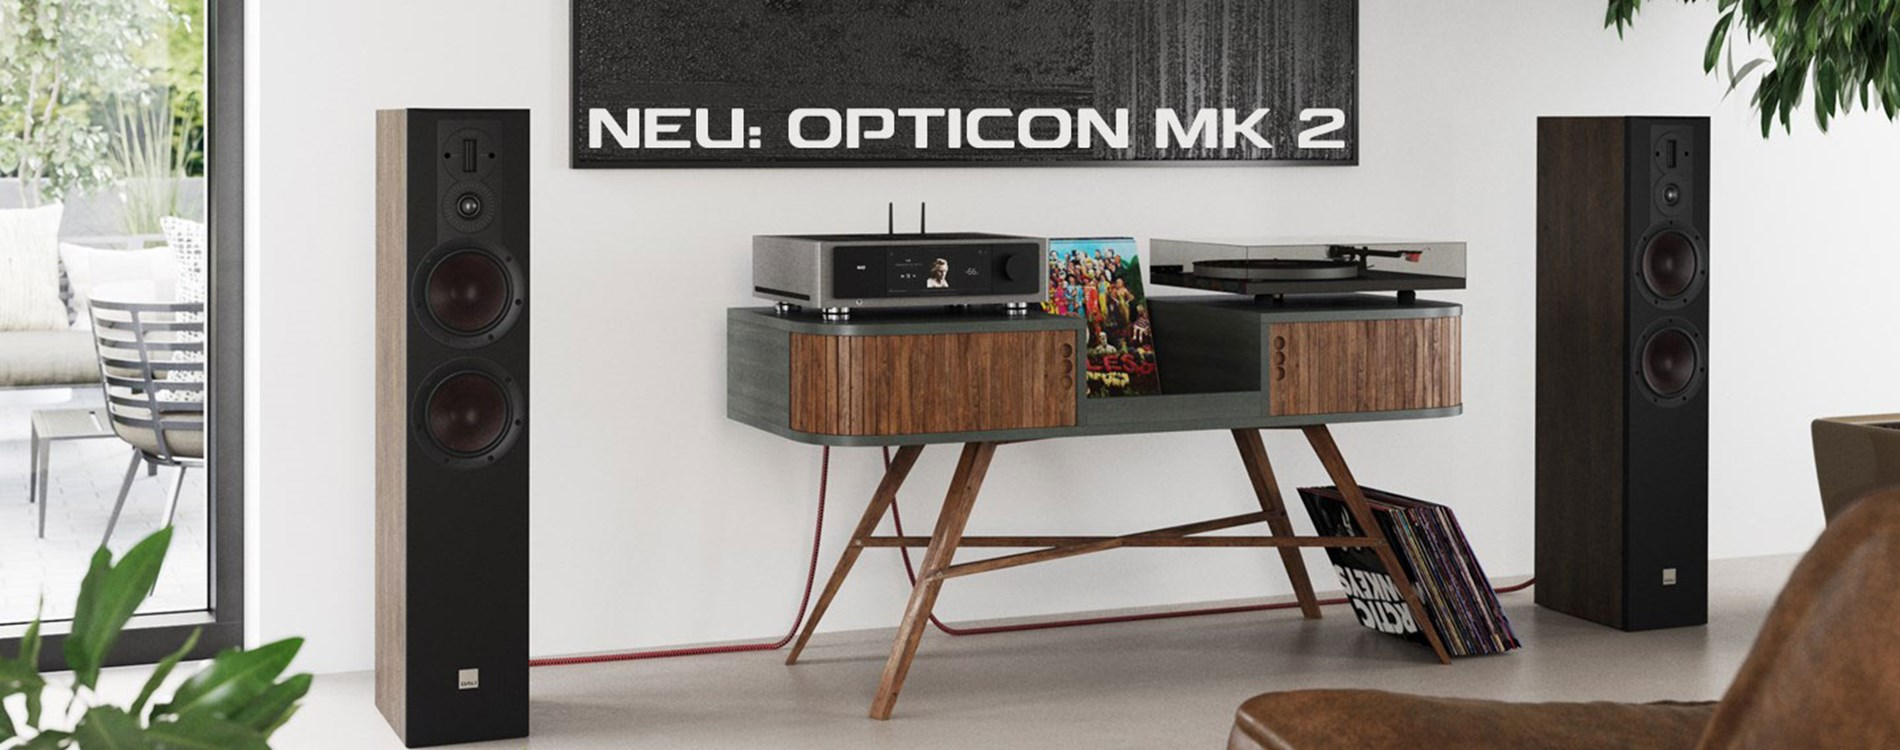 Dali Opticon Mk2 Homepage De